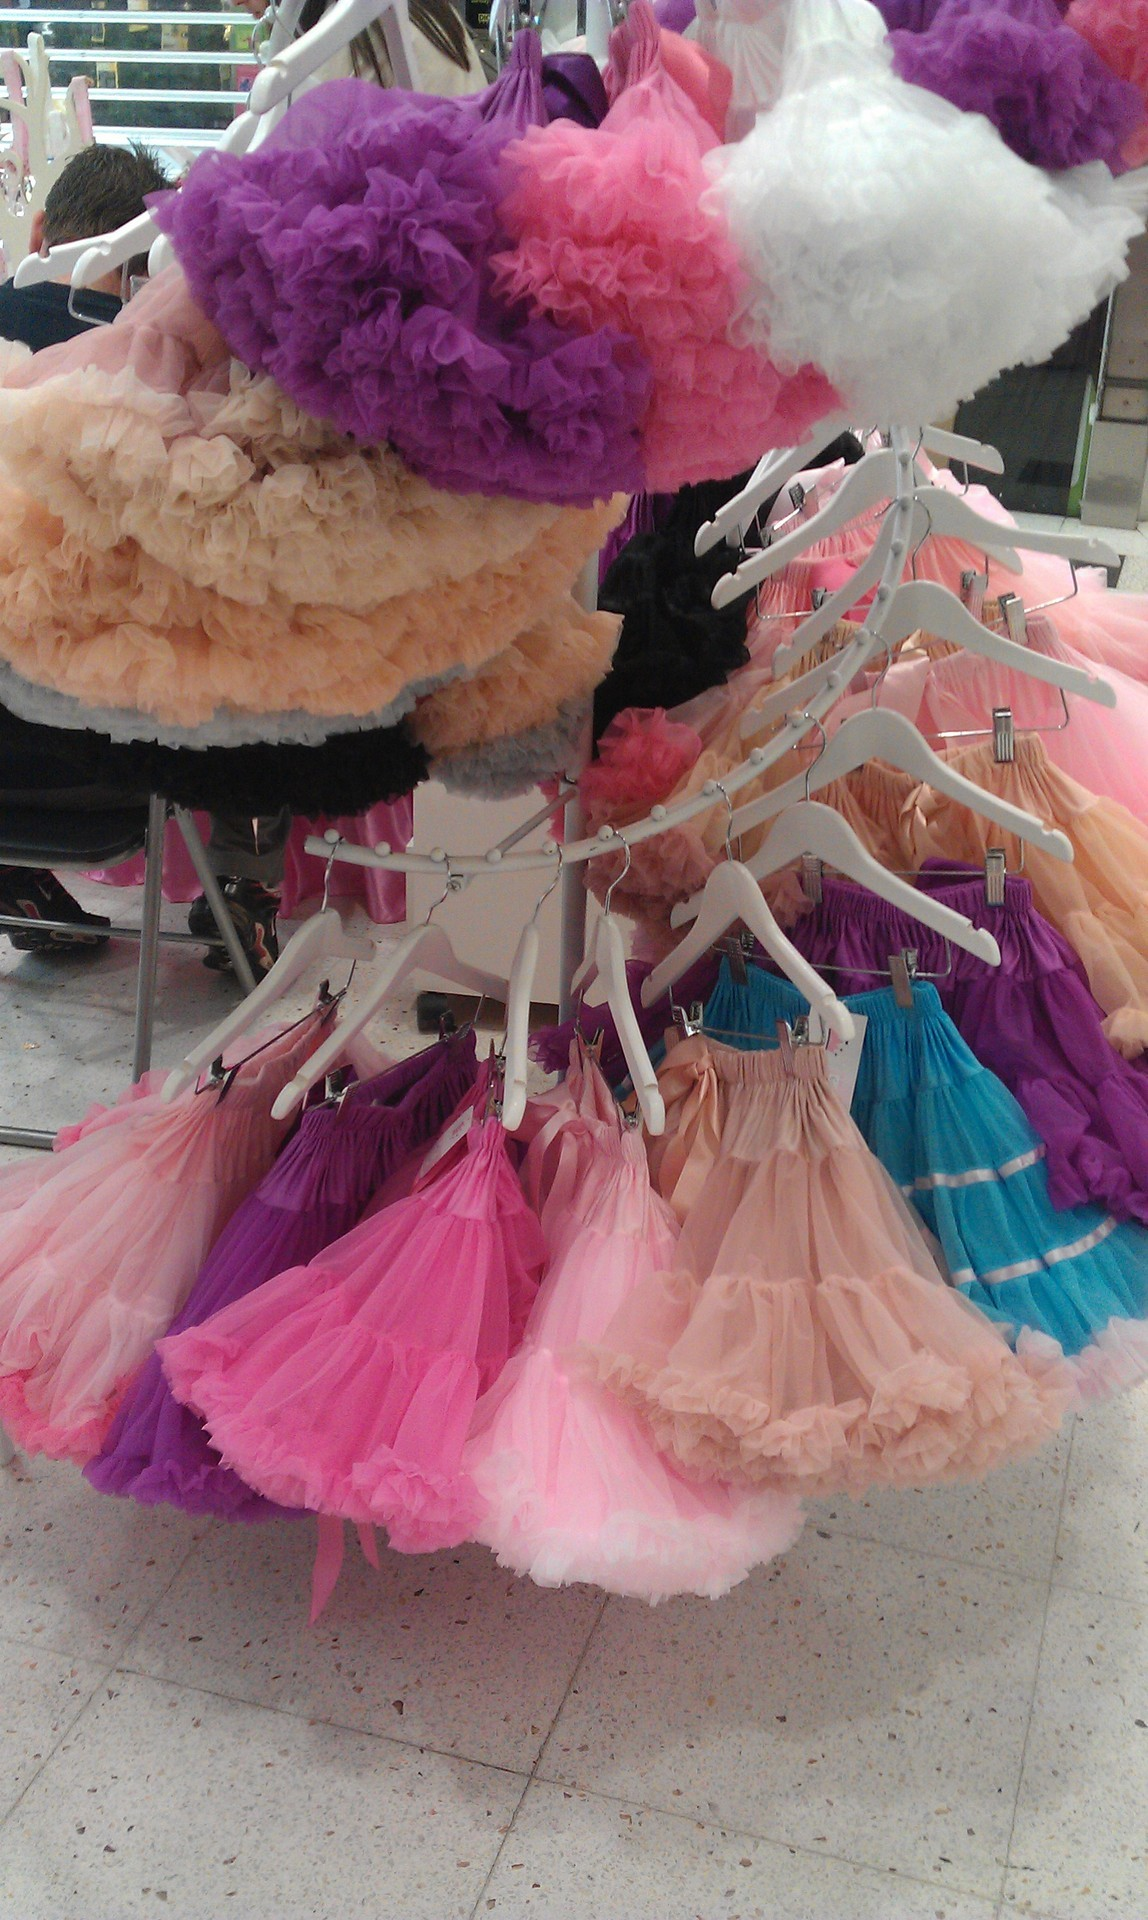 I wish I had a baby girl I'd dress her in these